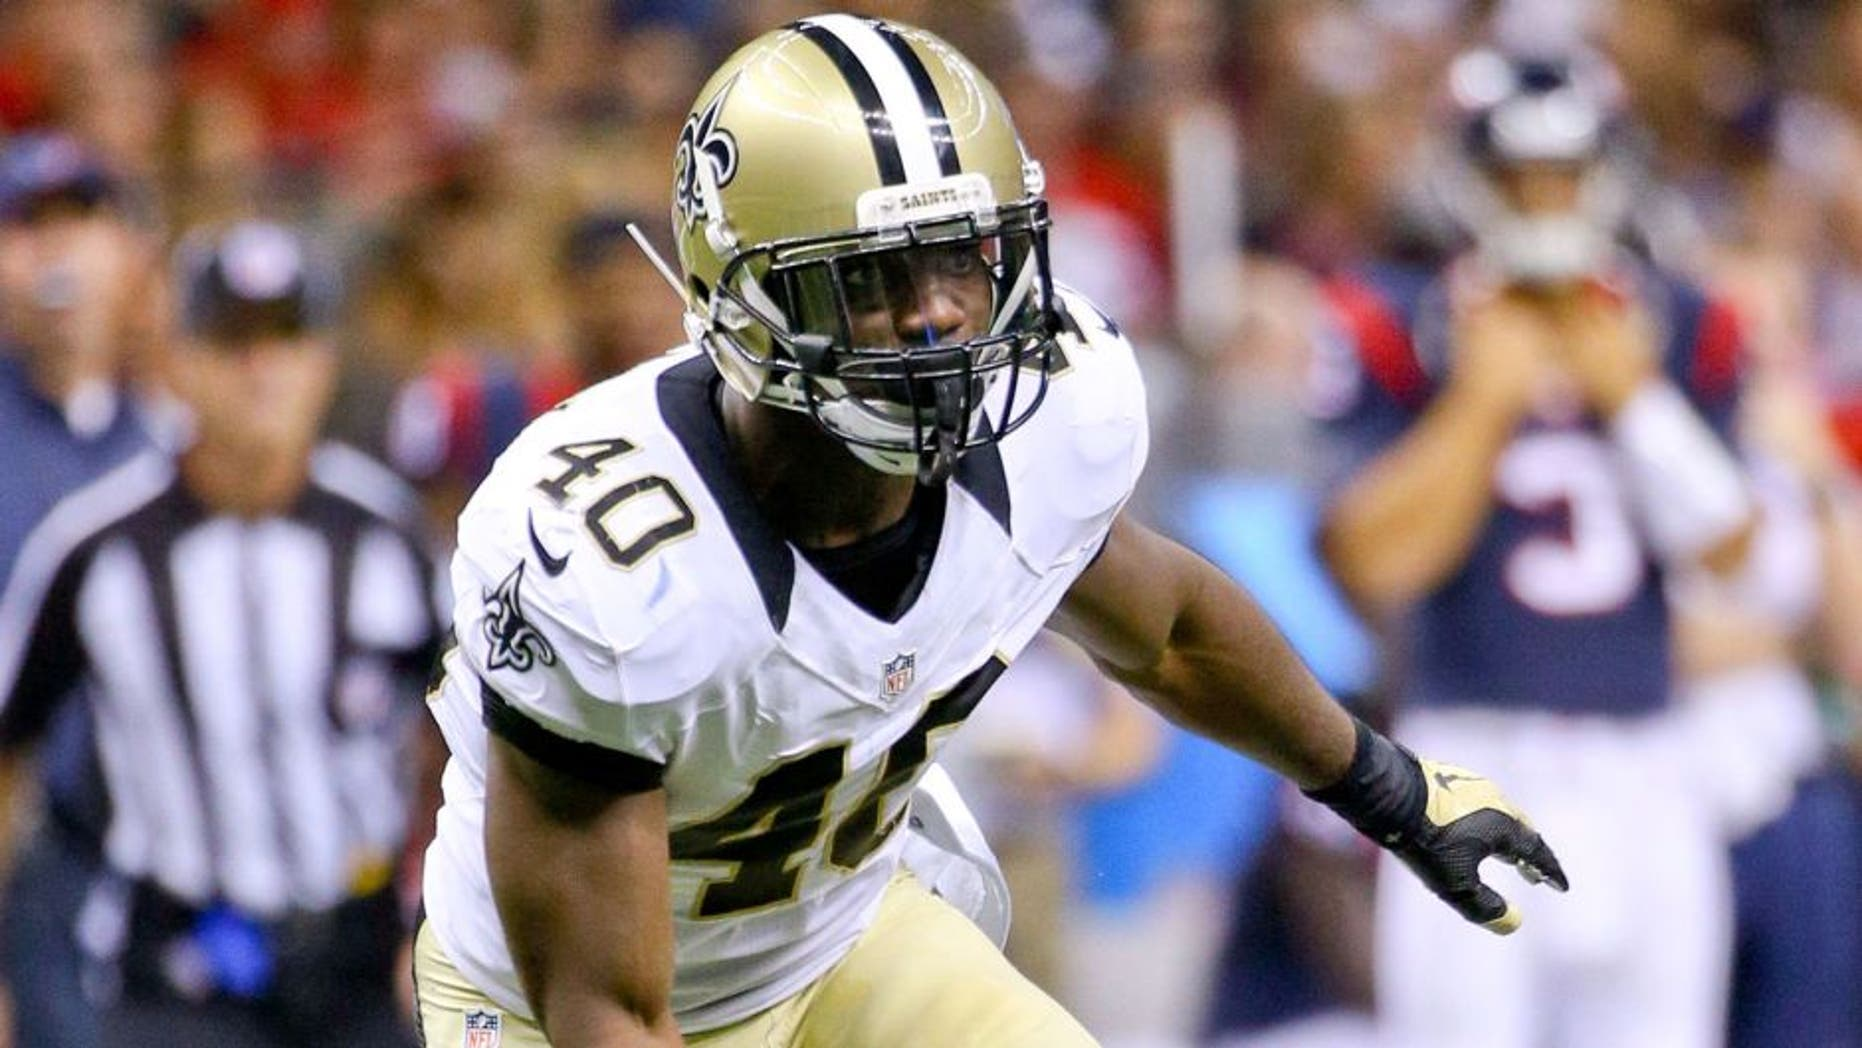 Aug 30, 2015; New Orleans, LA, USA; New Orleans Saints defensive back Delvin Breaux (40) against the Houston Texans during the first half of a preseason game at the Mercedes-Benz Superdome. Mandatory Credit: Derick E. Hingle-USA TODAY Sports